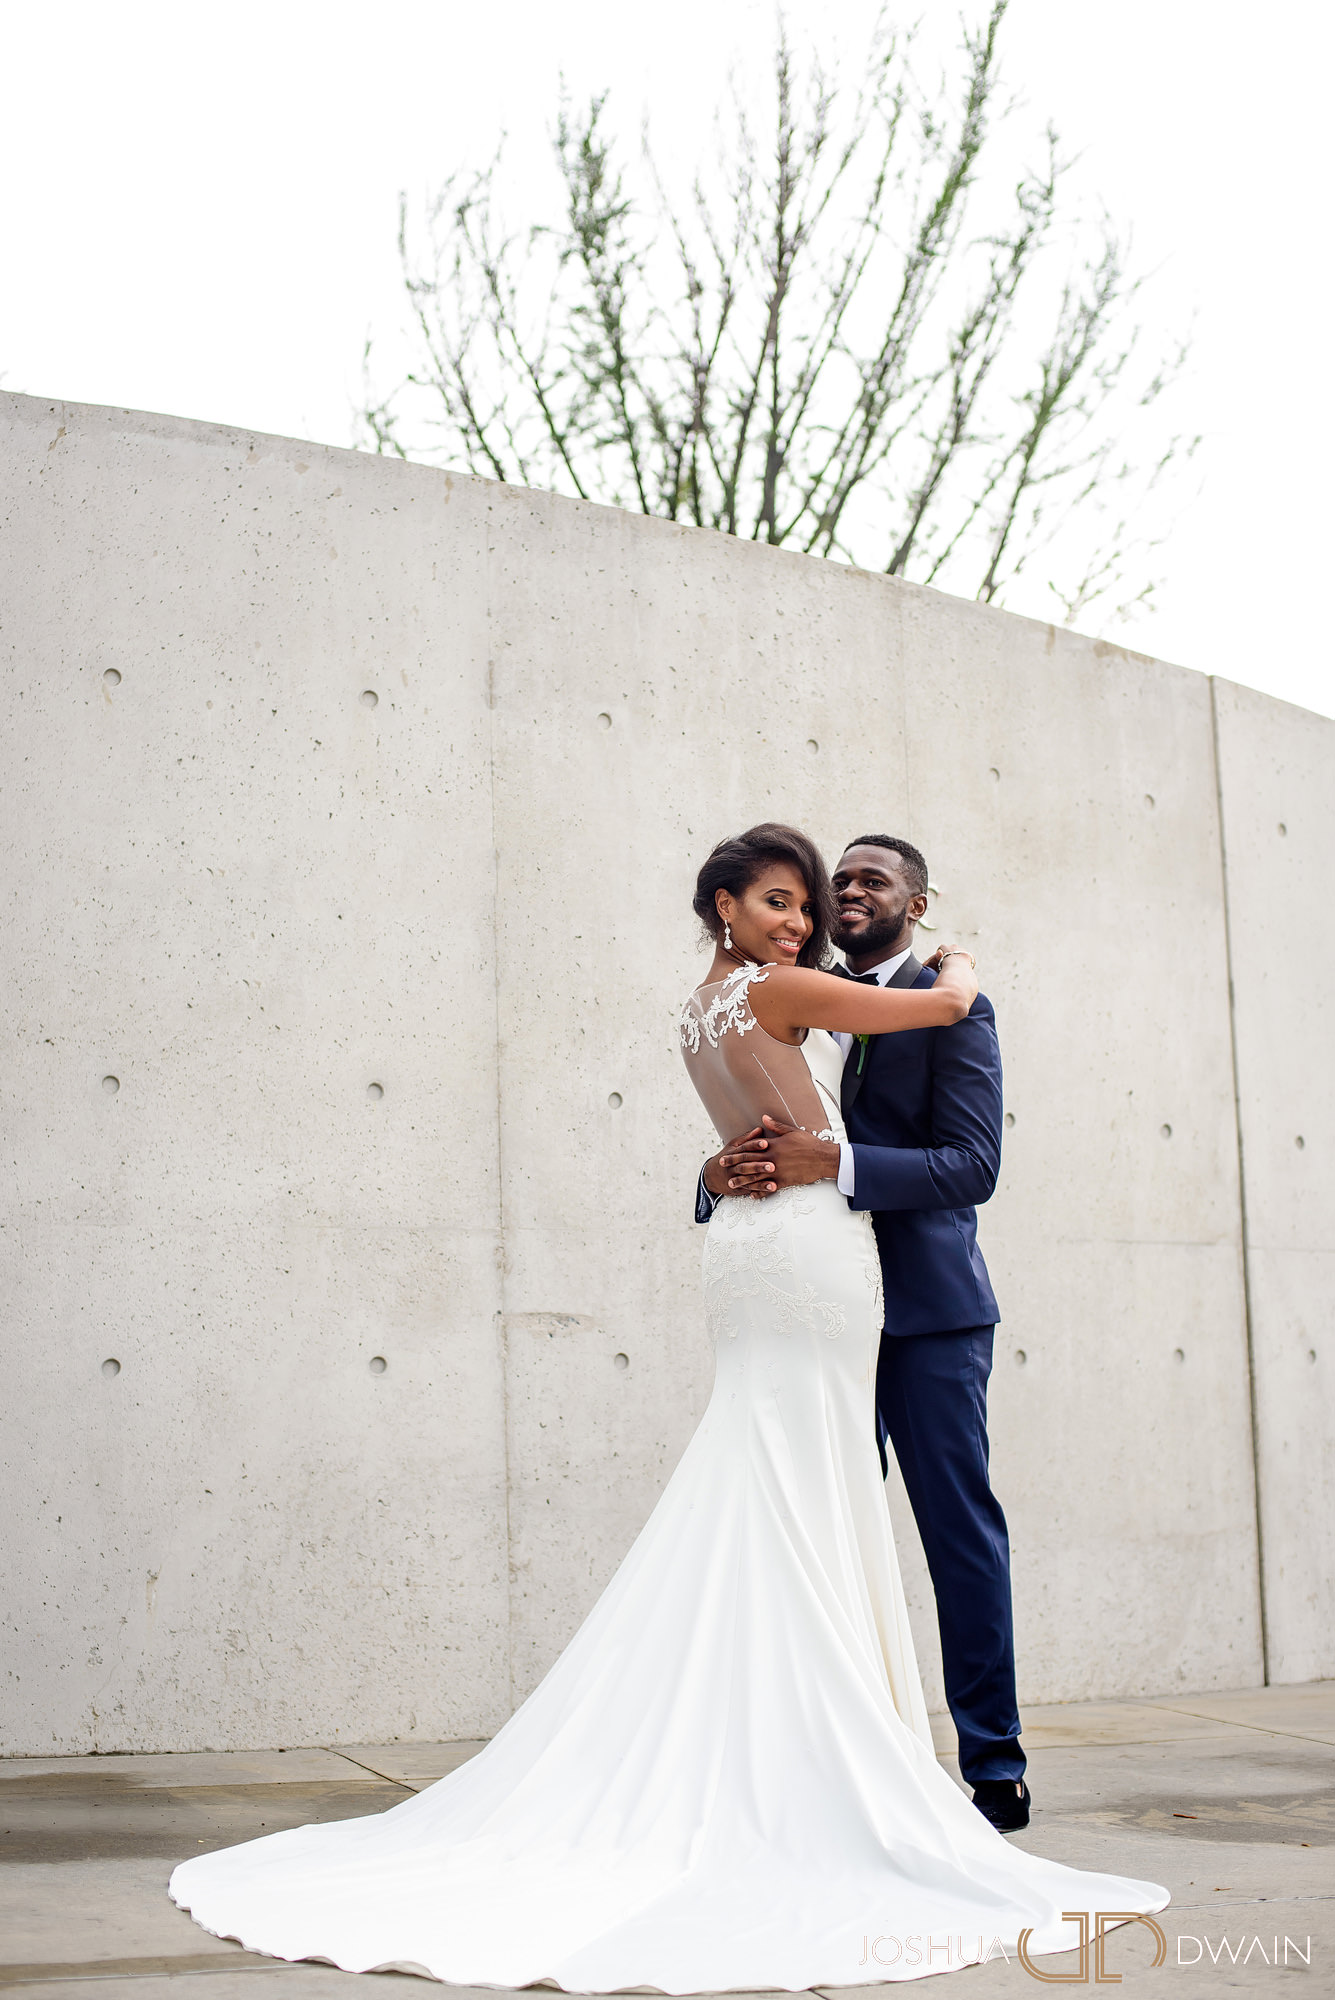 Alicia & Kola's Brooklyn Botanic Wedding